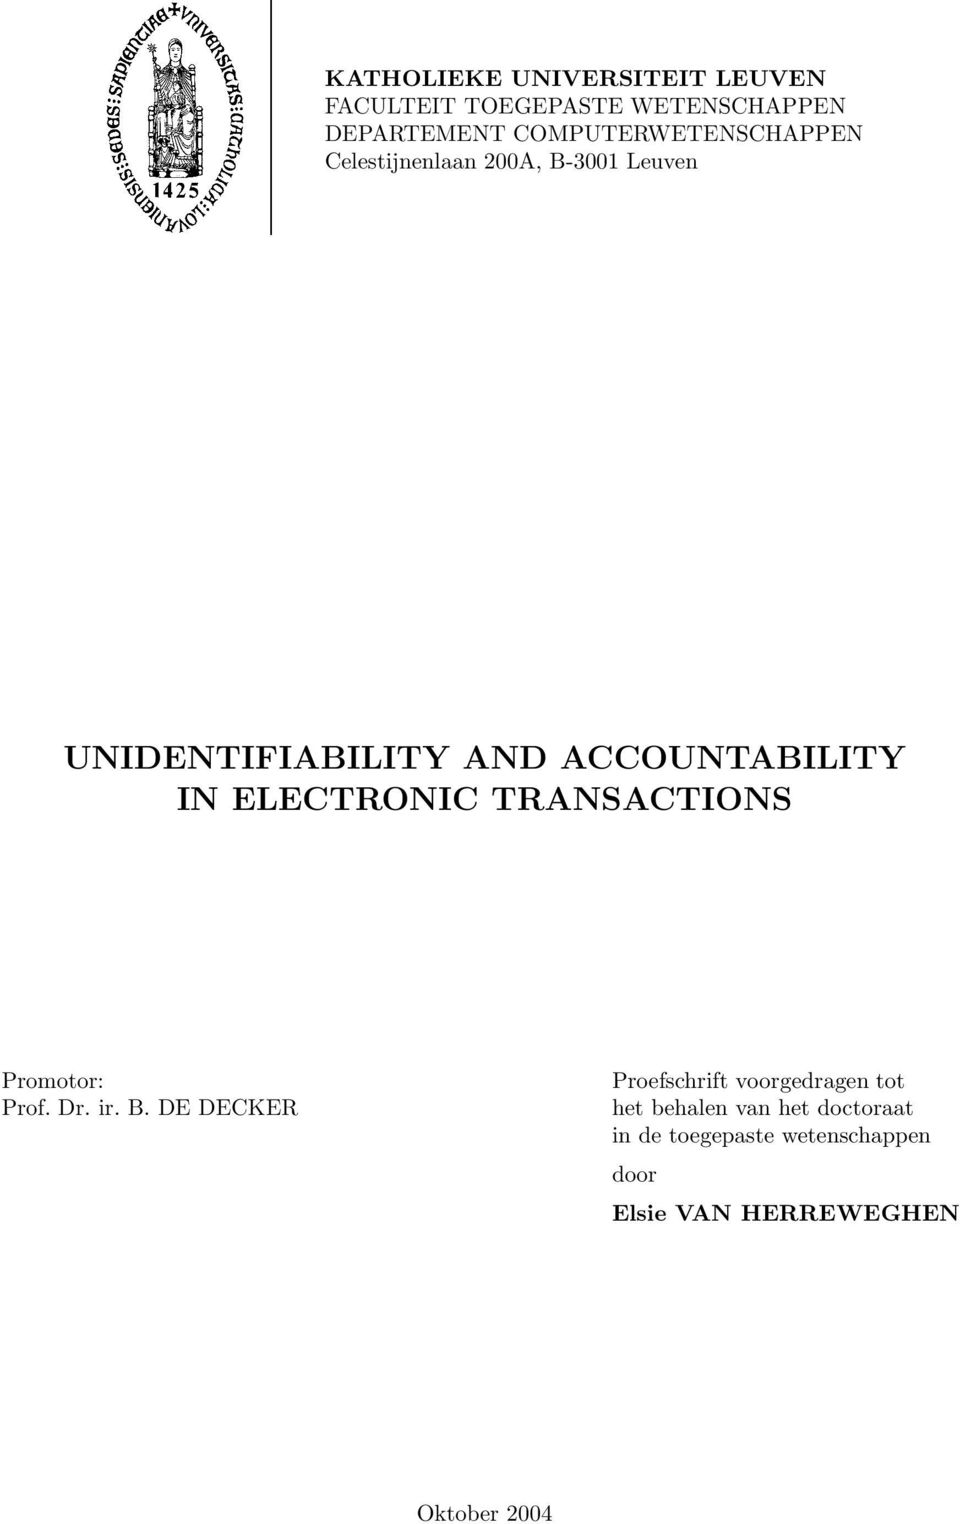 ACCOUNTABILITY IN ELECTRONIC TRANSACTIONS Promotor: Prof. Dr. ir. B.